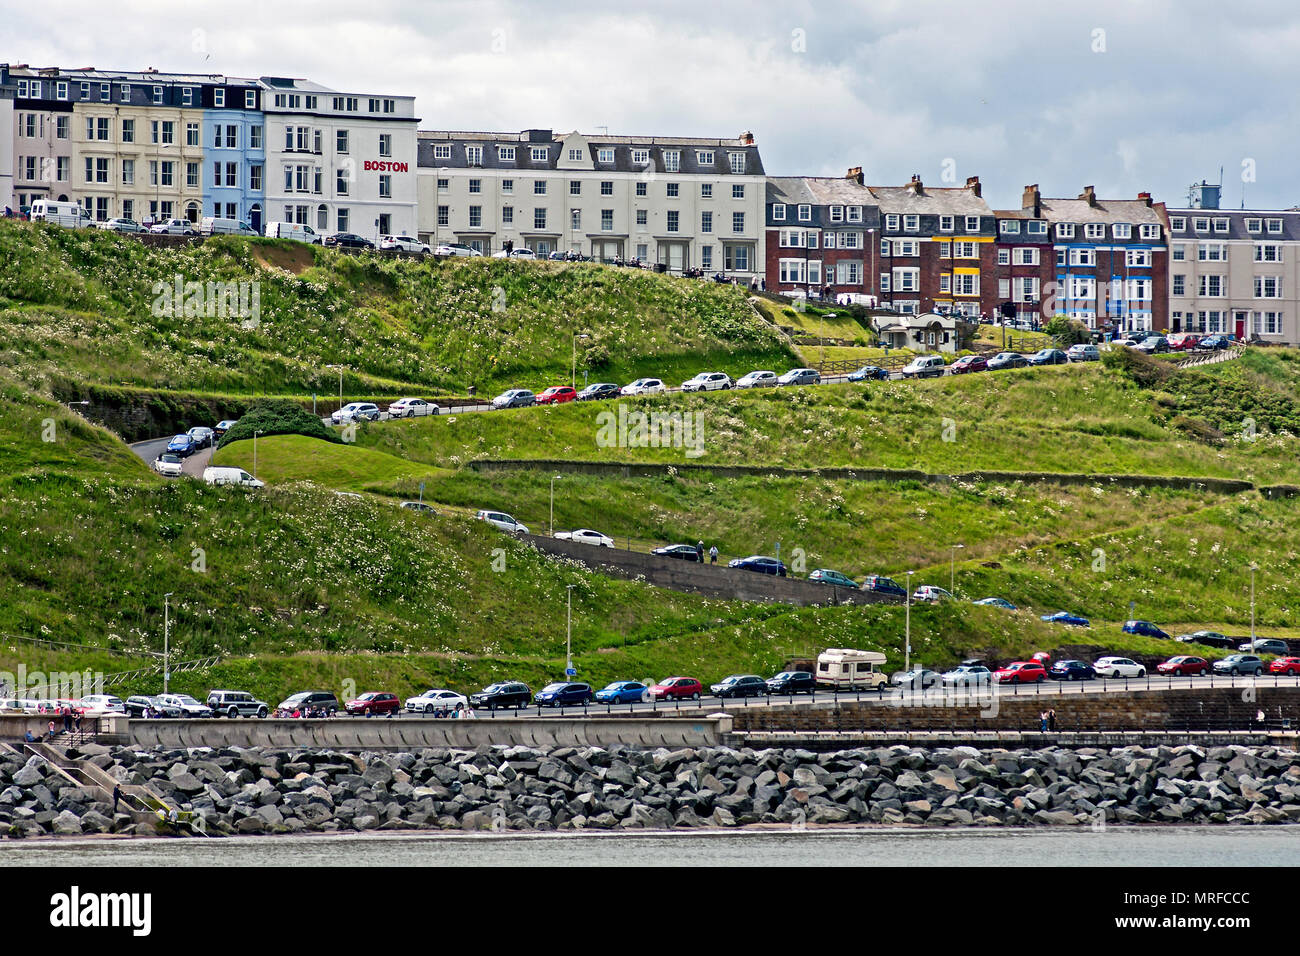 Peak time parking - cars parked from top to bottom on the zigzag layout of Albert Road in Scarborough's North Bay. - Stock Image